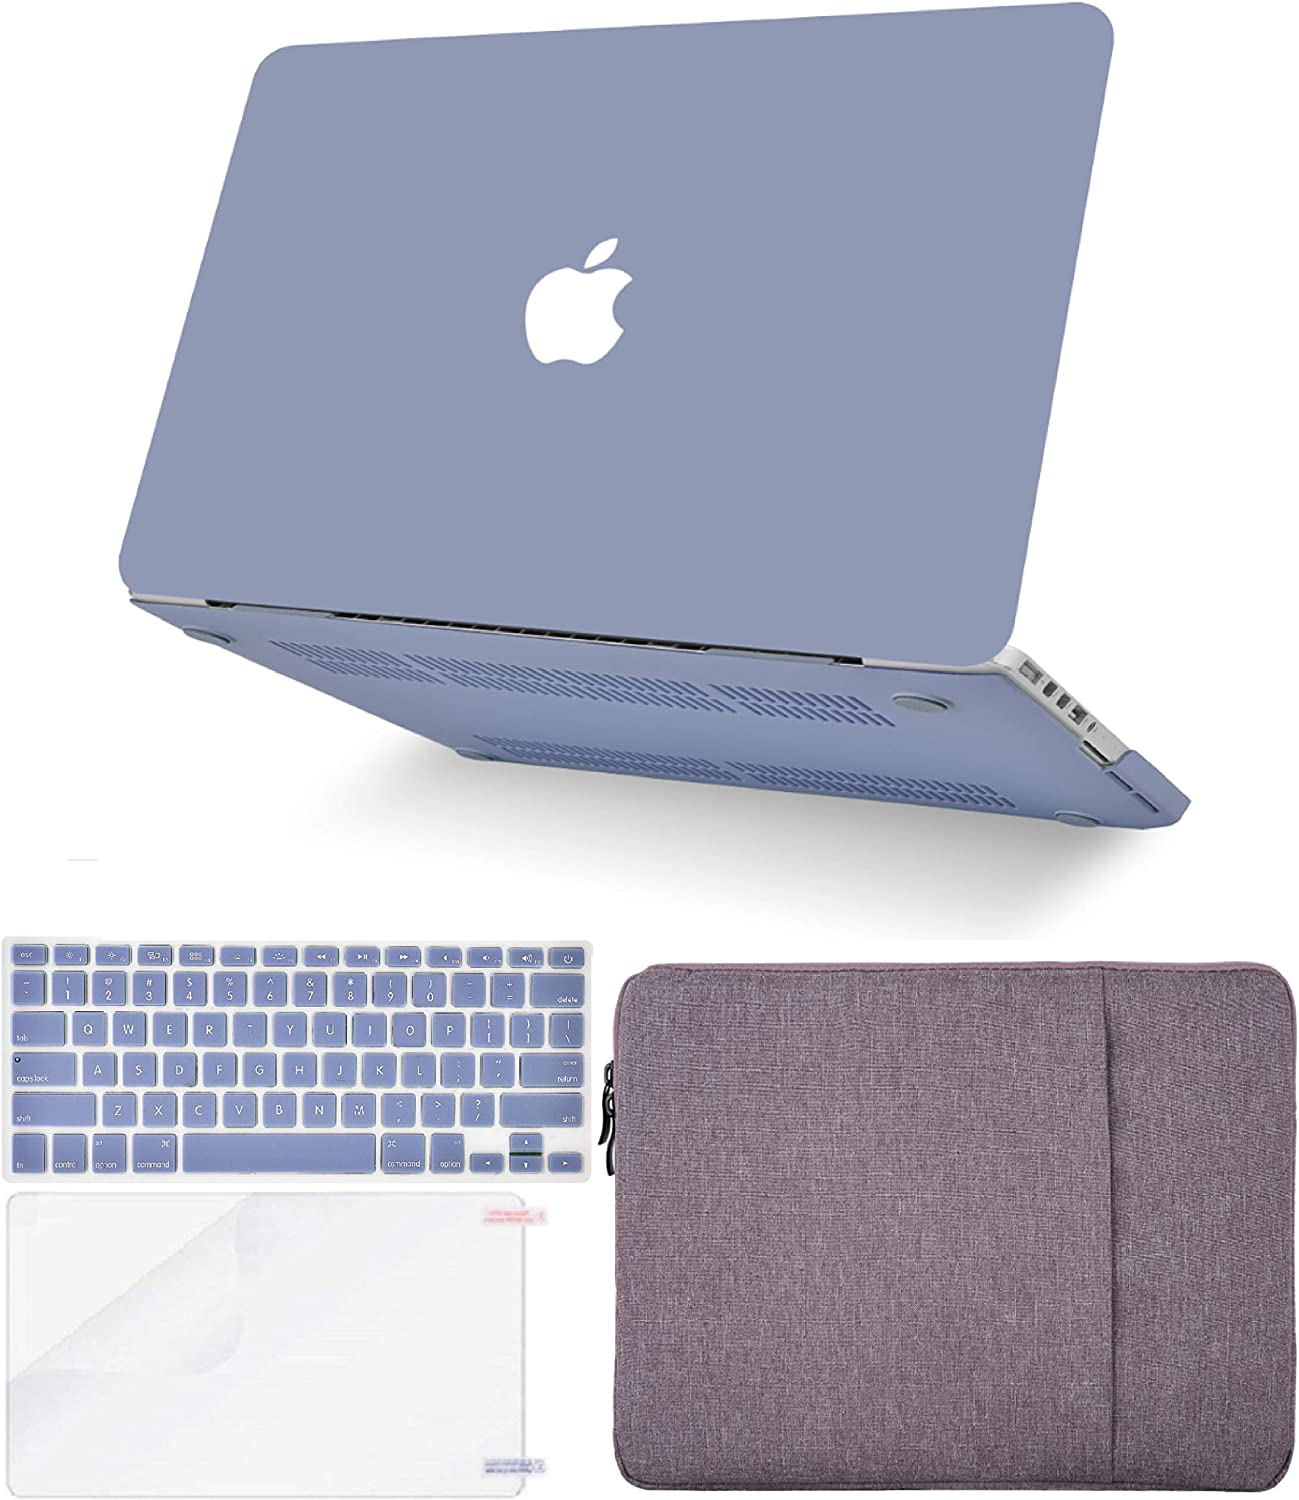 "KECC Laptop Case for MacBook Pro 13"" (2020, Touch Bar) w/Keyboard Cover + Sleeve + Screen Protector (4 in 1 Bundle) Hard Shell A2289/A2251 (Lavender Grey)"